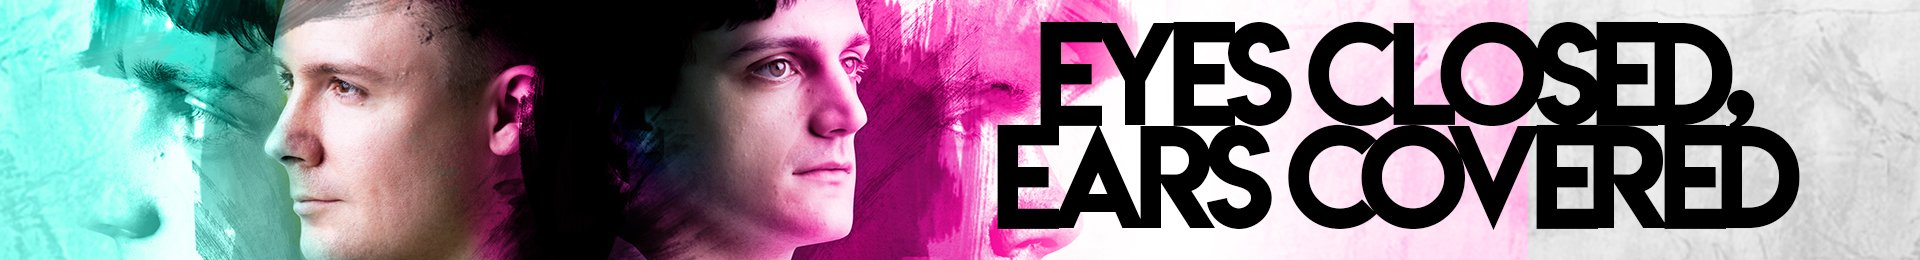 Eyes Close, Ears Covered Header Image